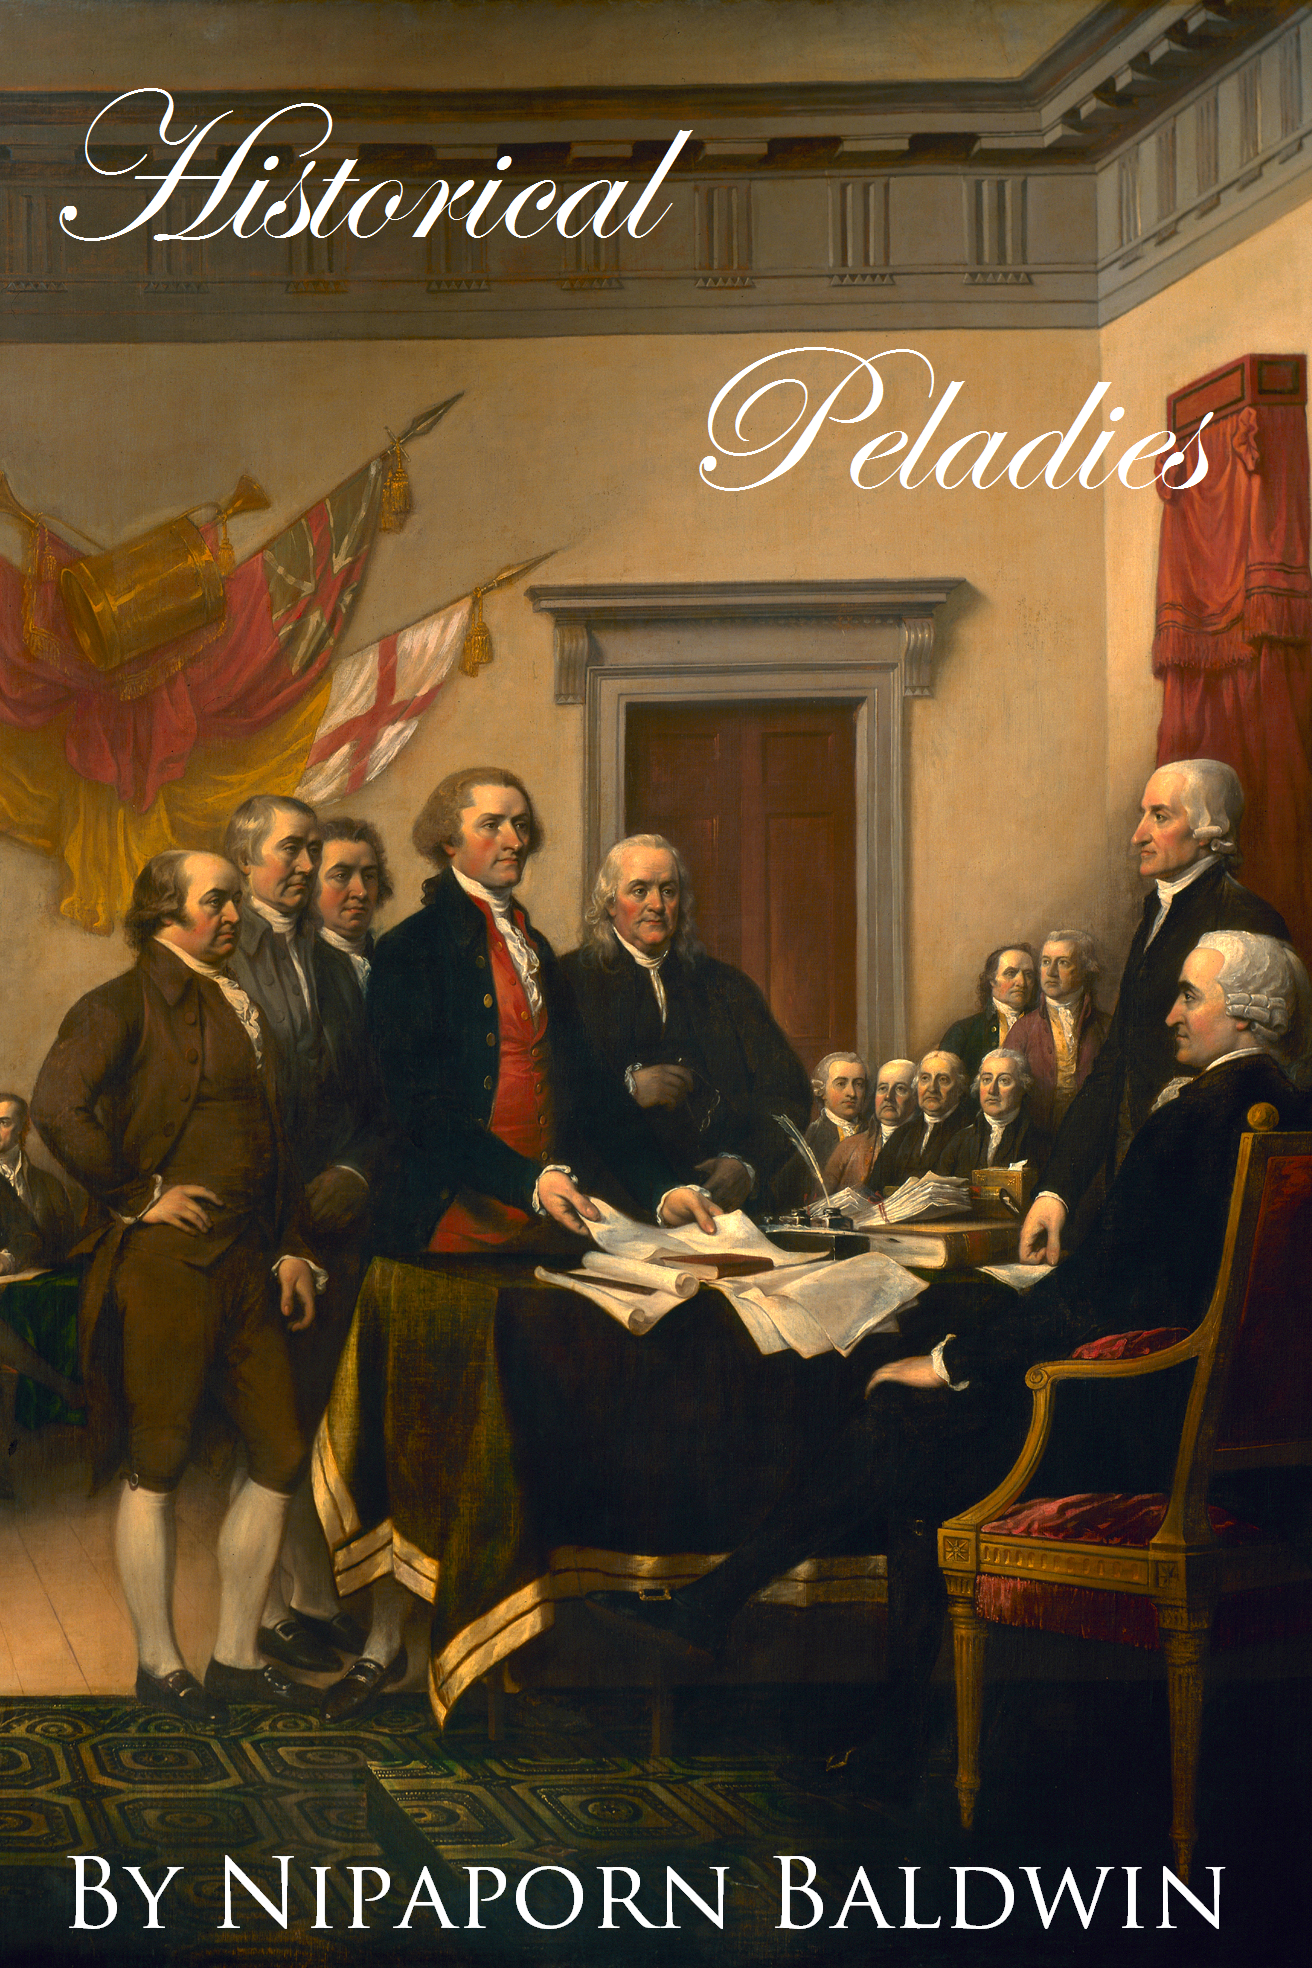 thomas paine on american society Thomas paine: the father of the american revolution when we look at the struggle for american independence, most of us think of the war that the original patriots fought and won against the british.